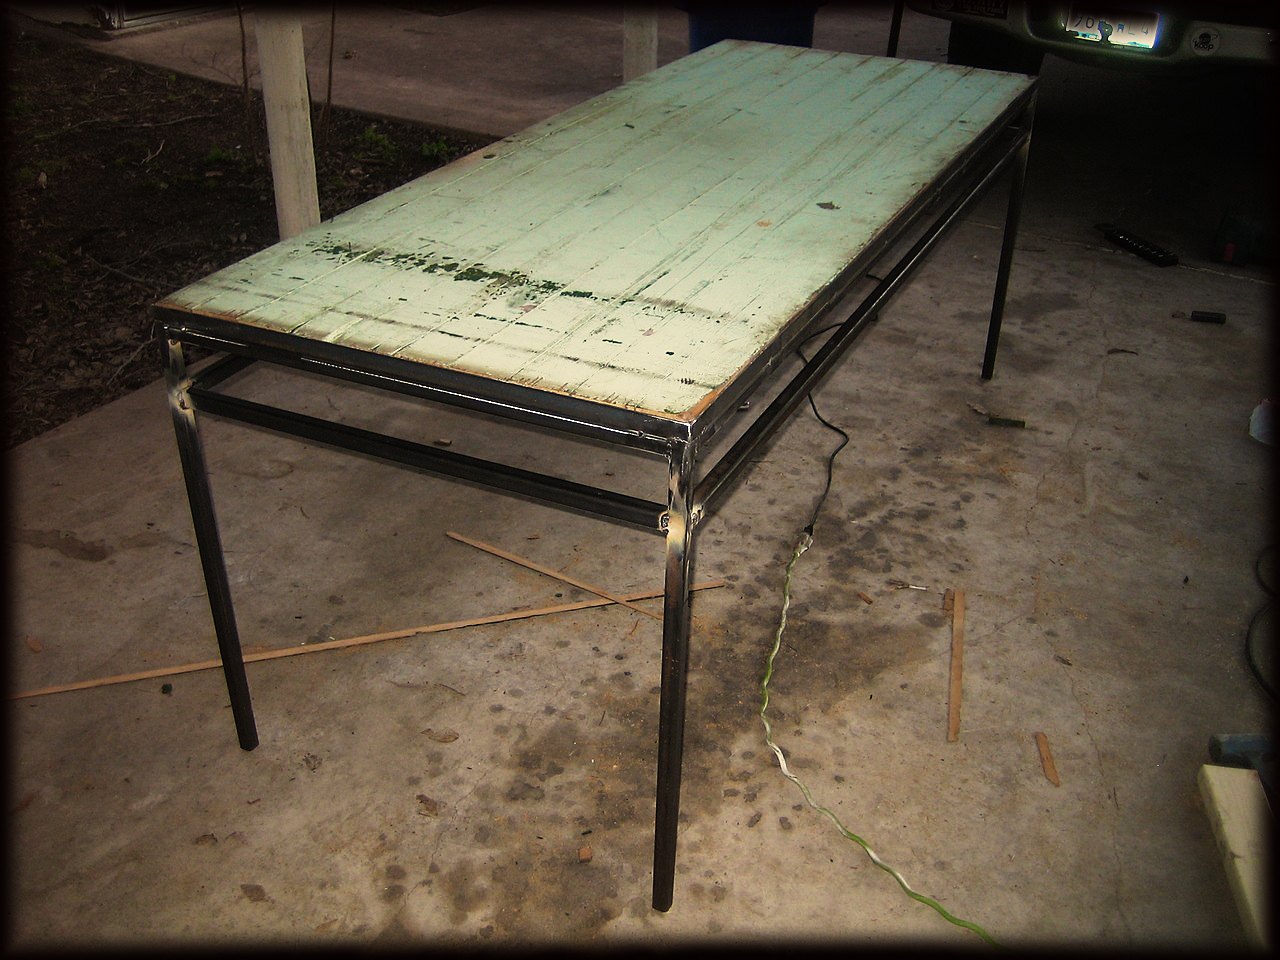 my new art table in the works!! how lucky am I? davidalexanderclark: barn door and steel work table for me lady